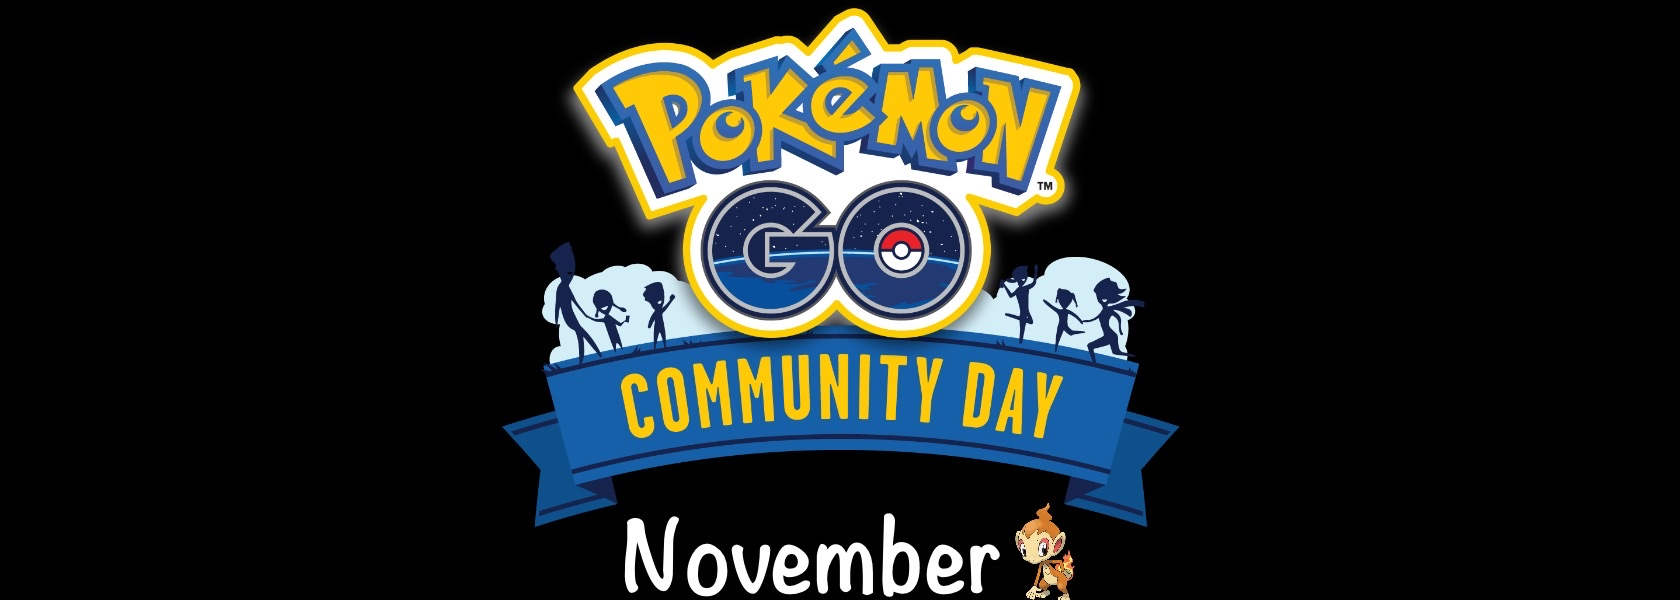 De Pokémon Go Community Day van november draait alles om Chimchar